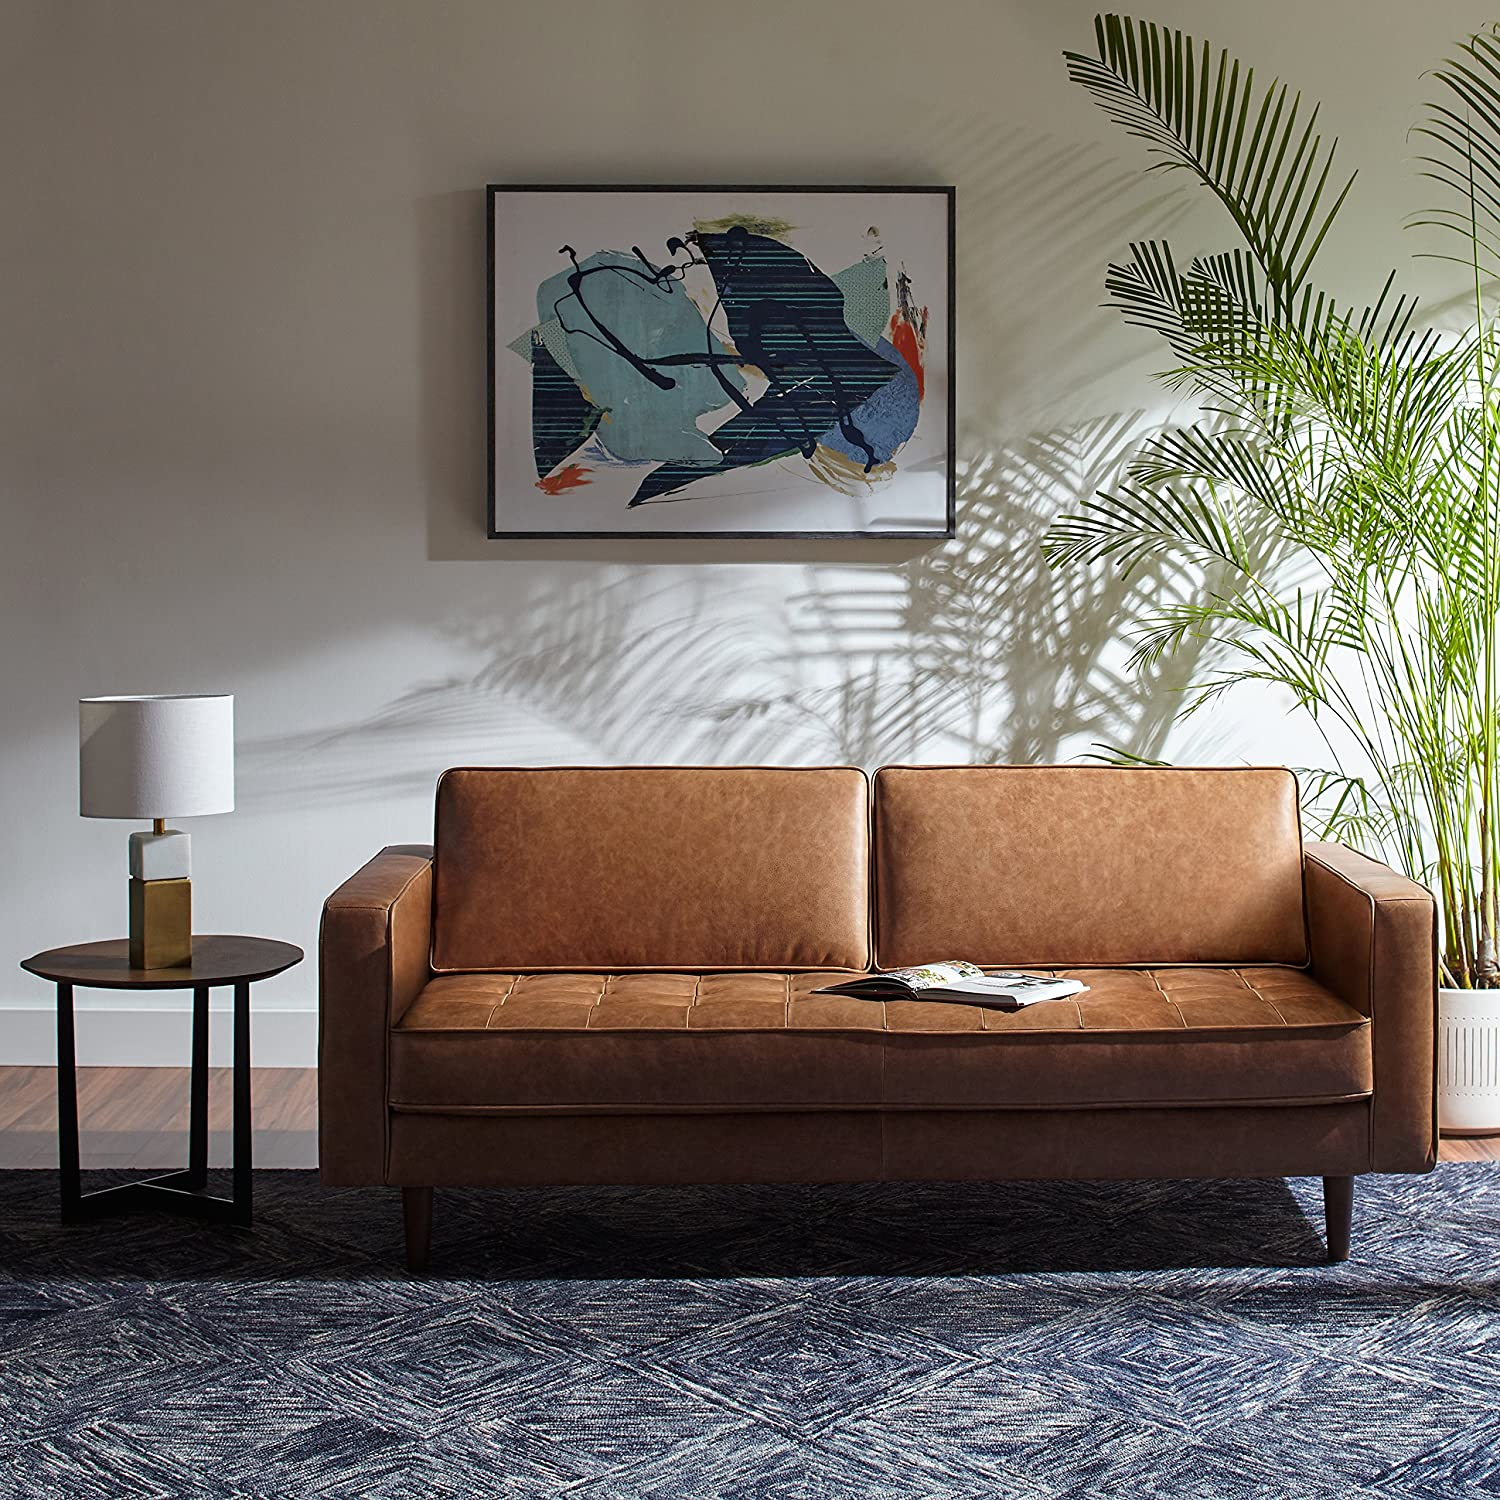 The 5 Best Living Room Sofas And Couches: Buying Guide & Reviews 4